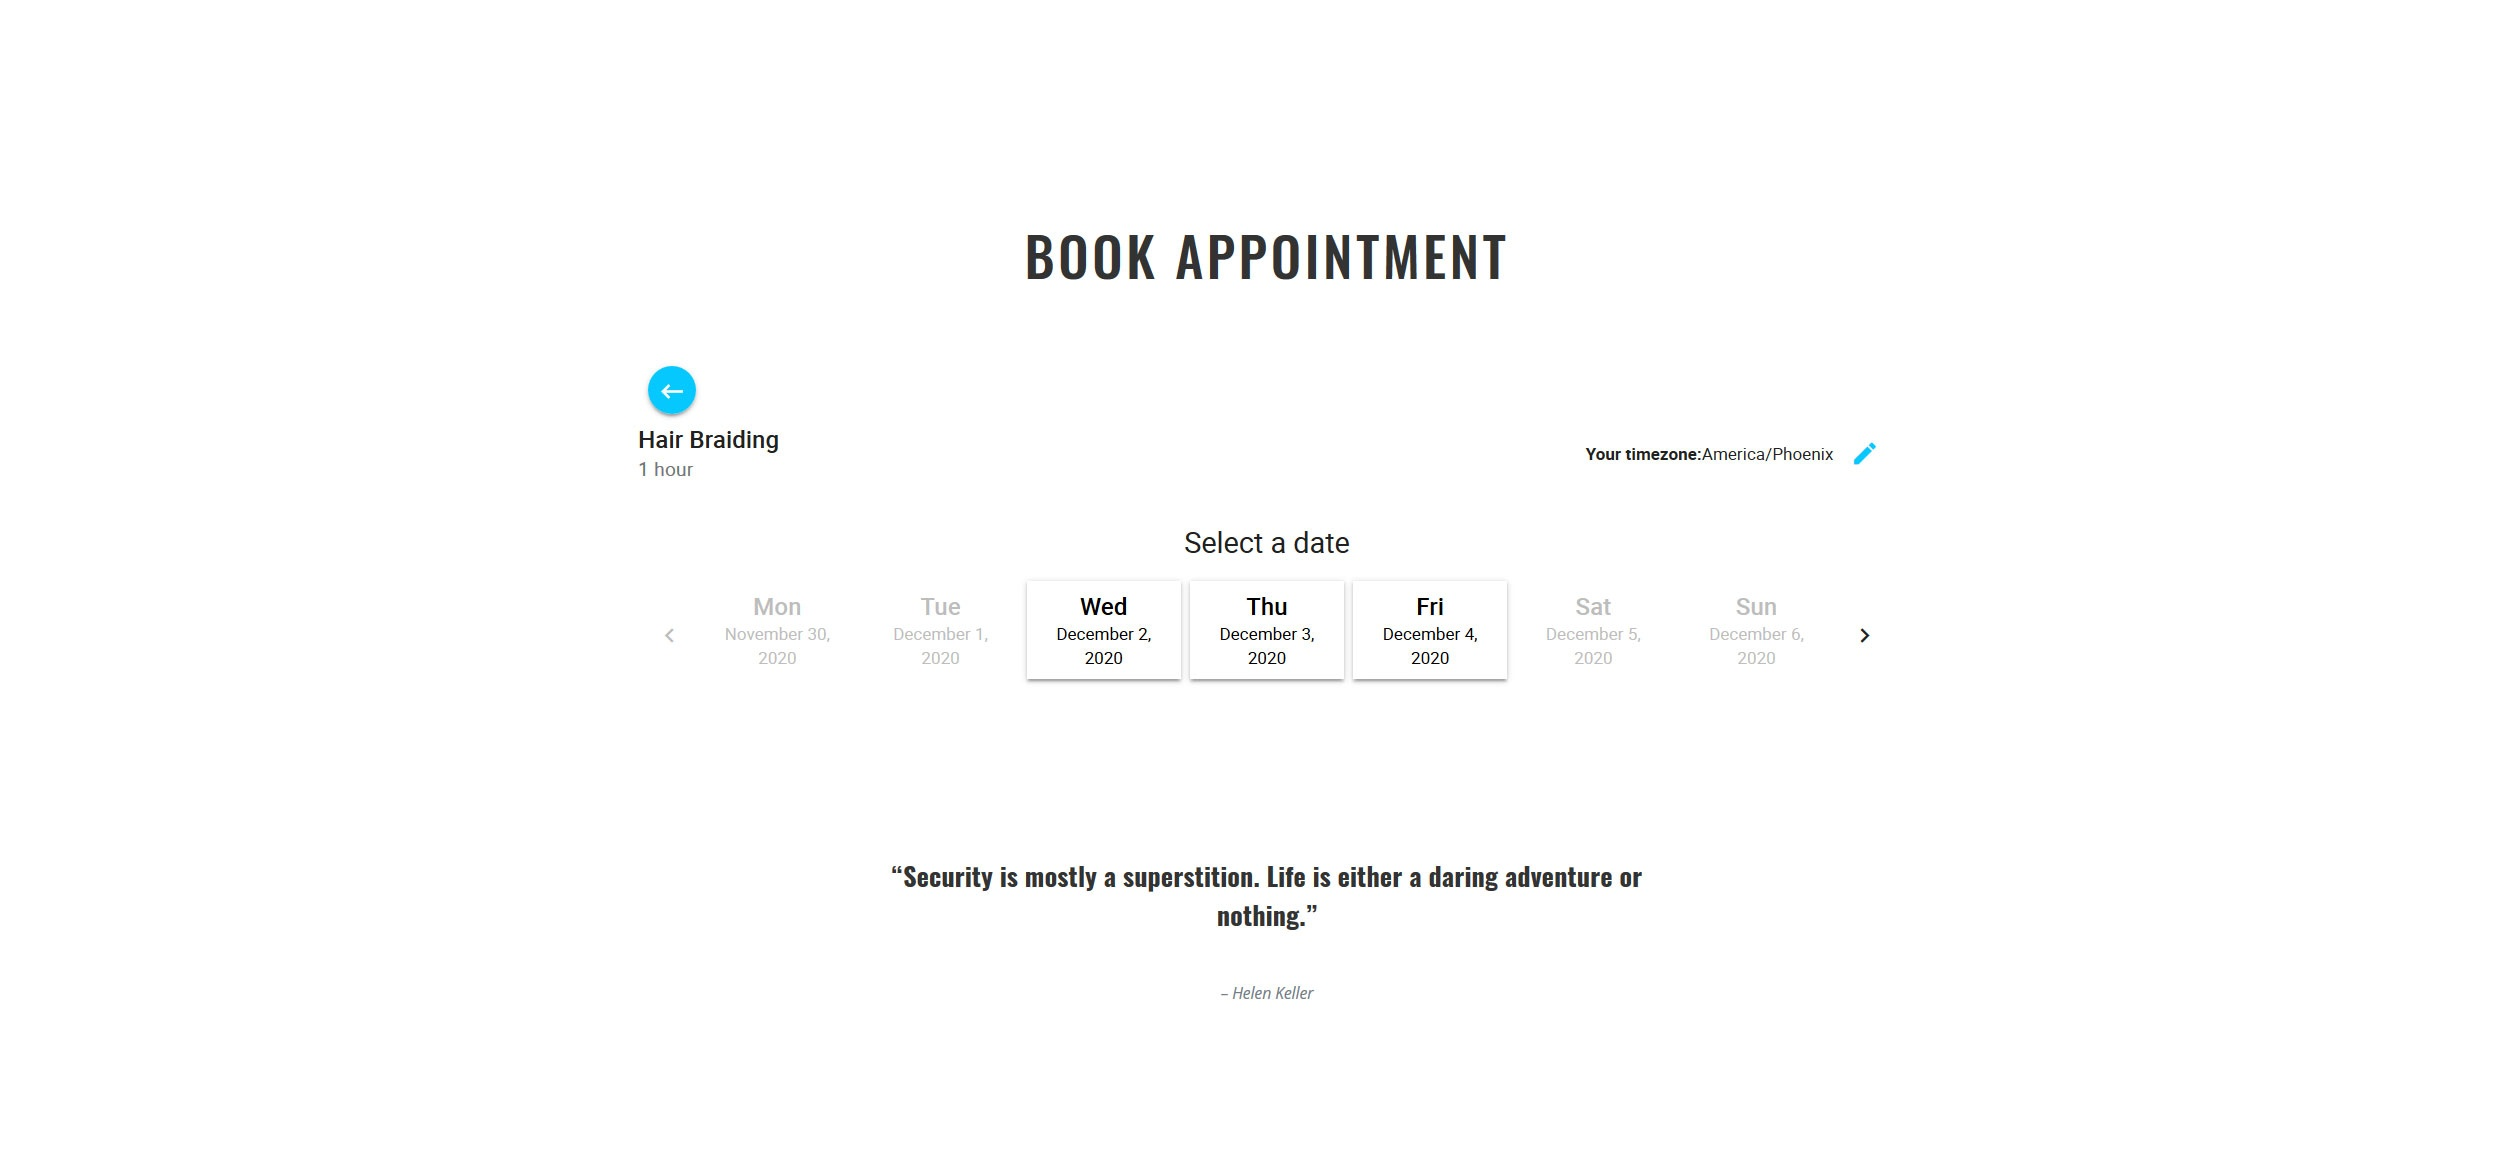 Website for Hair Braiding v1 - Appointment Scheduler & Quote